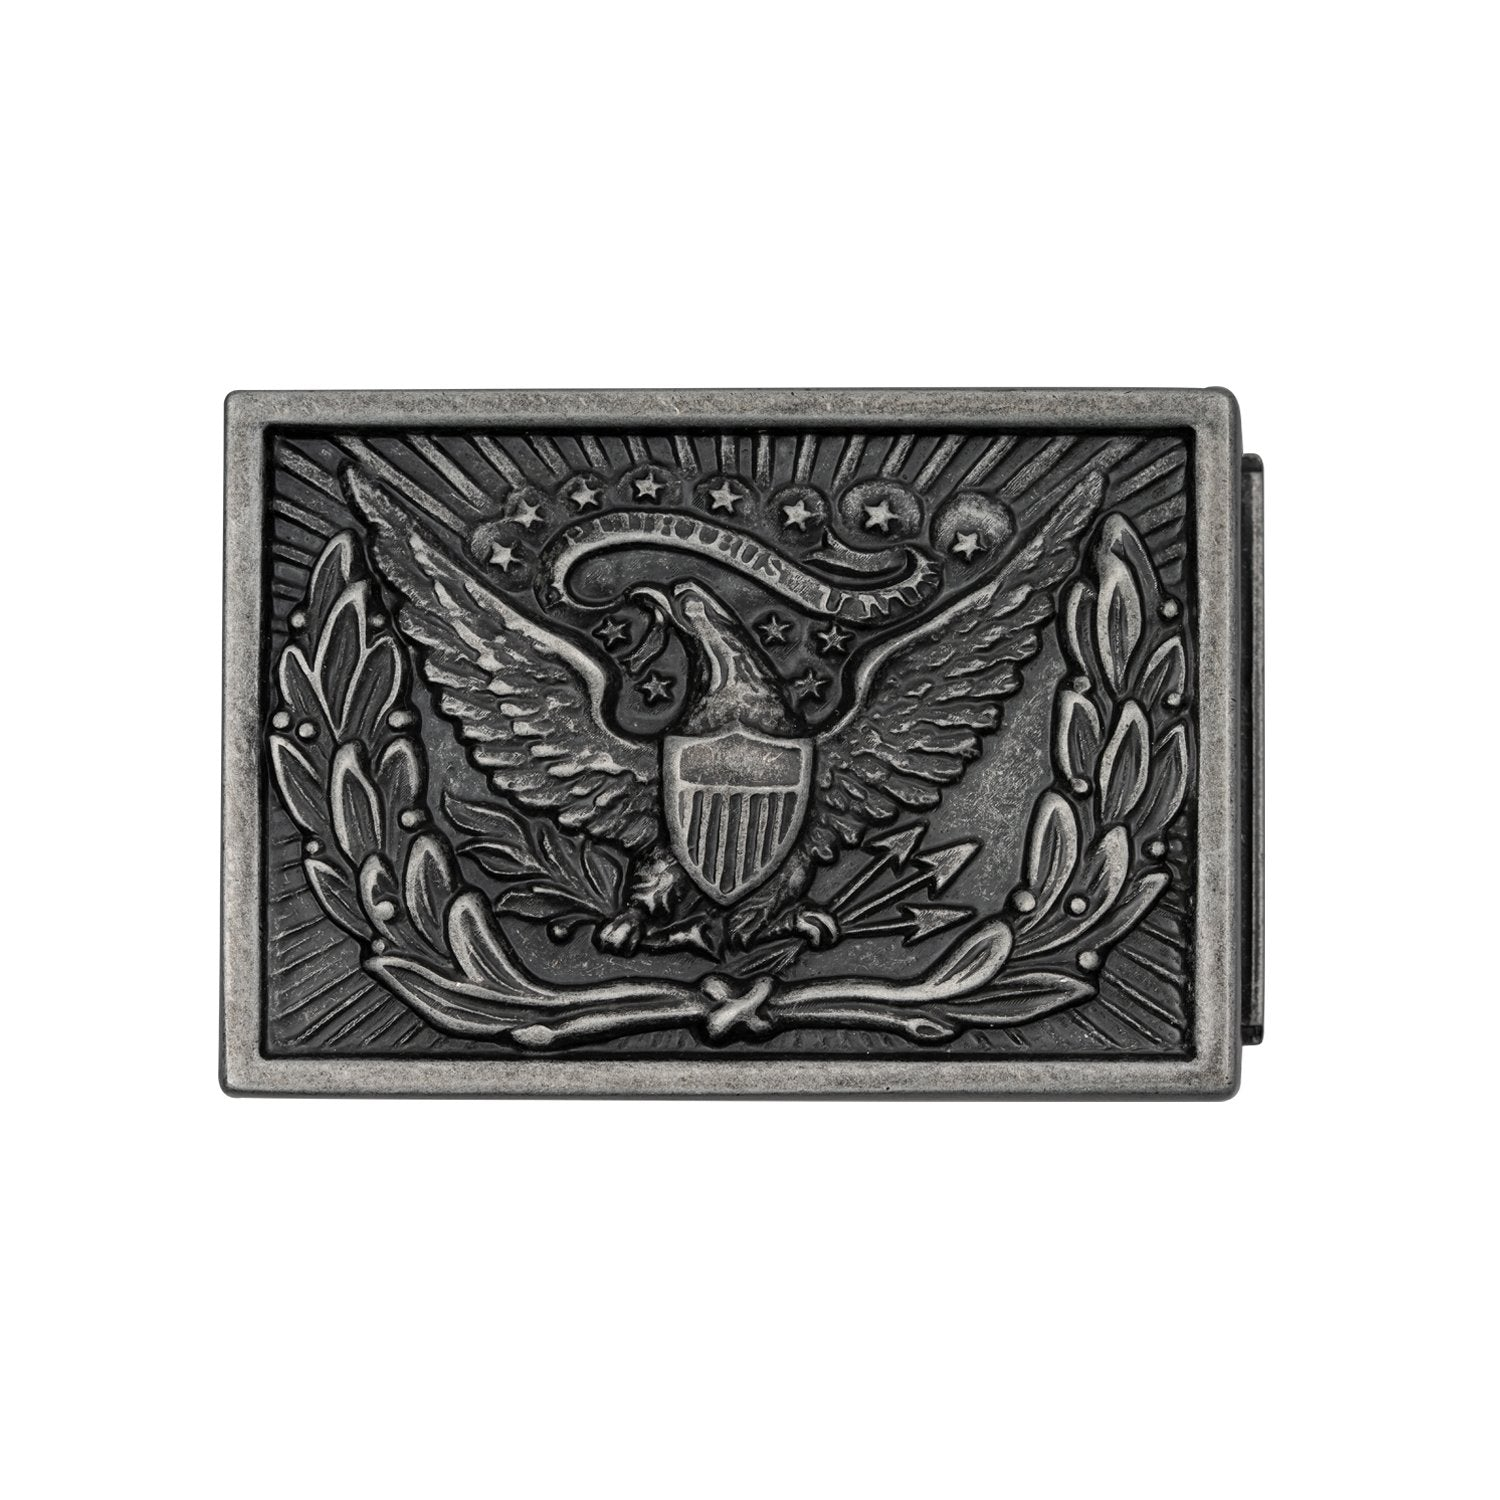 Mission Belt Buckle with an Eagle